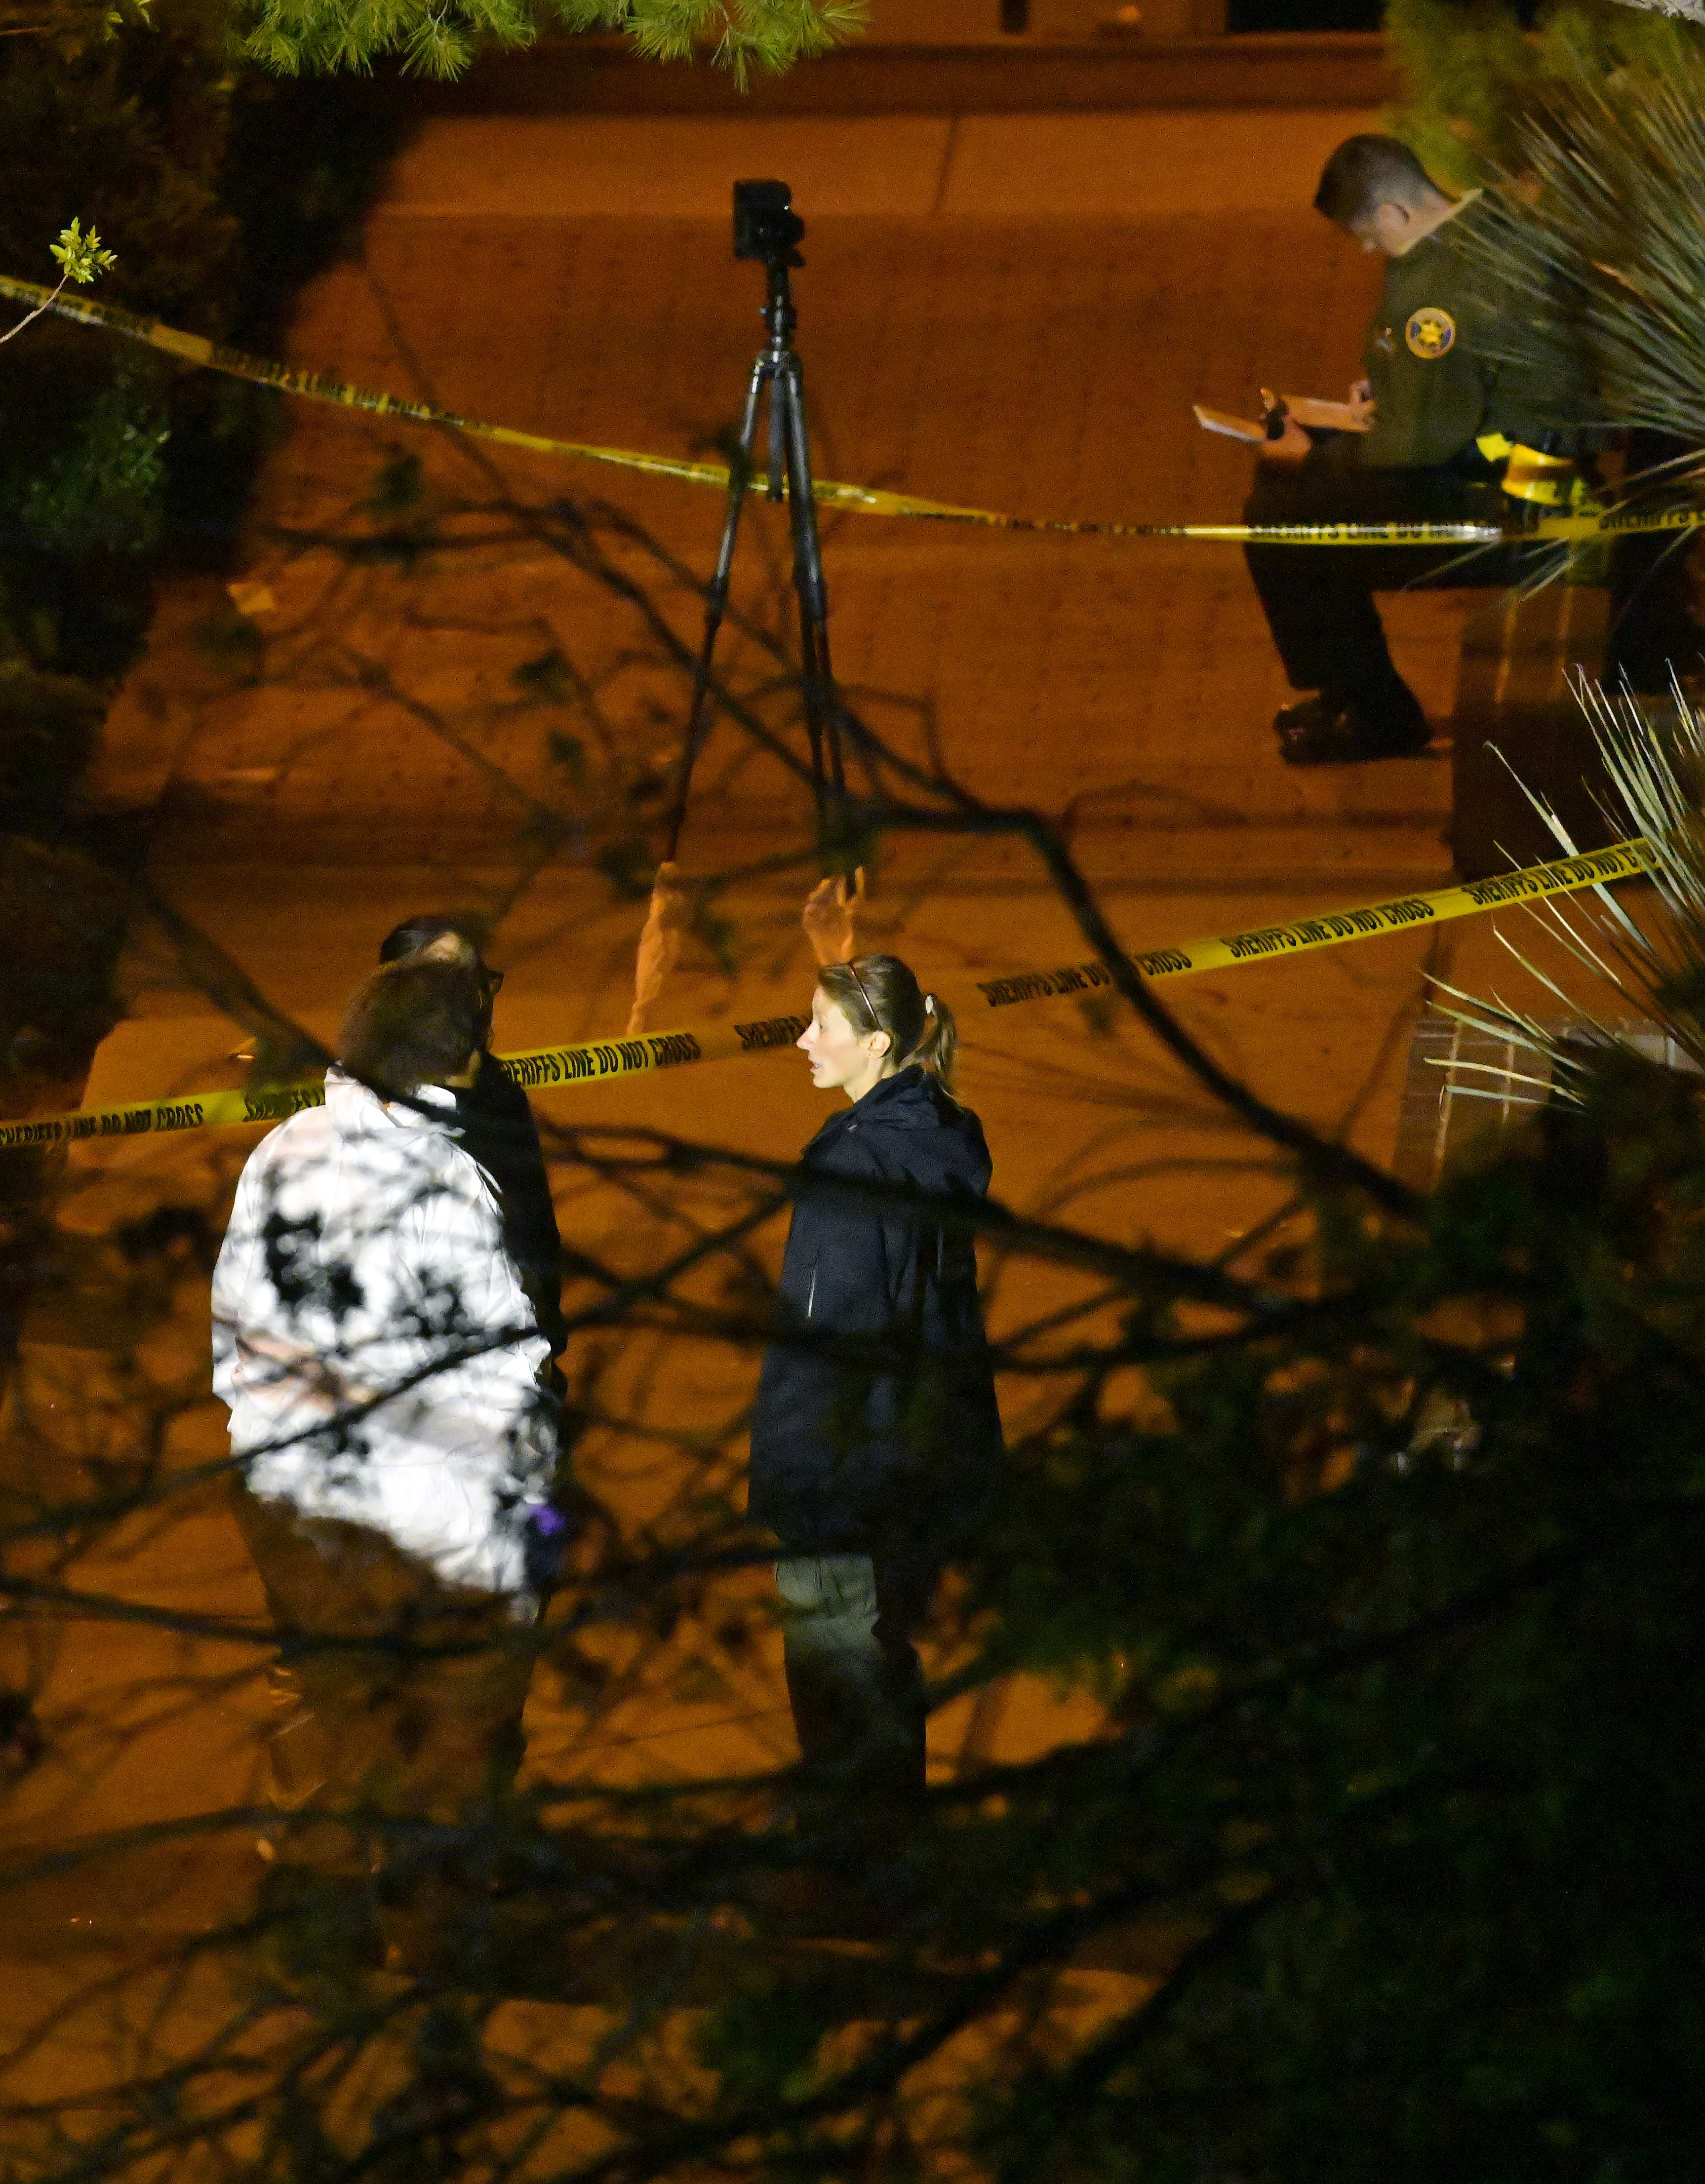 A forensics team works the scene Thursday, Nov. 8, 2018, in Thousand Oaks, Calif. where a gunman opened fire Wednesday inside a country dance bar crowded with hundreds of people on